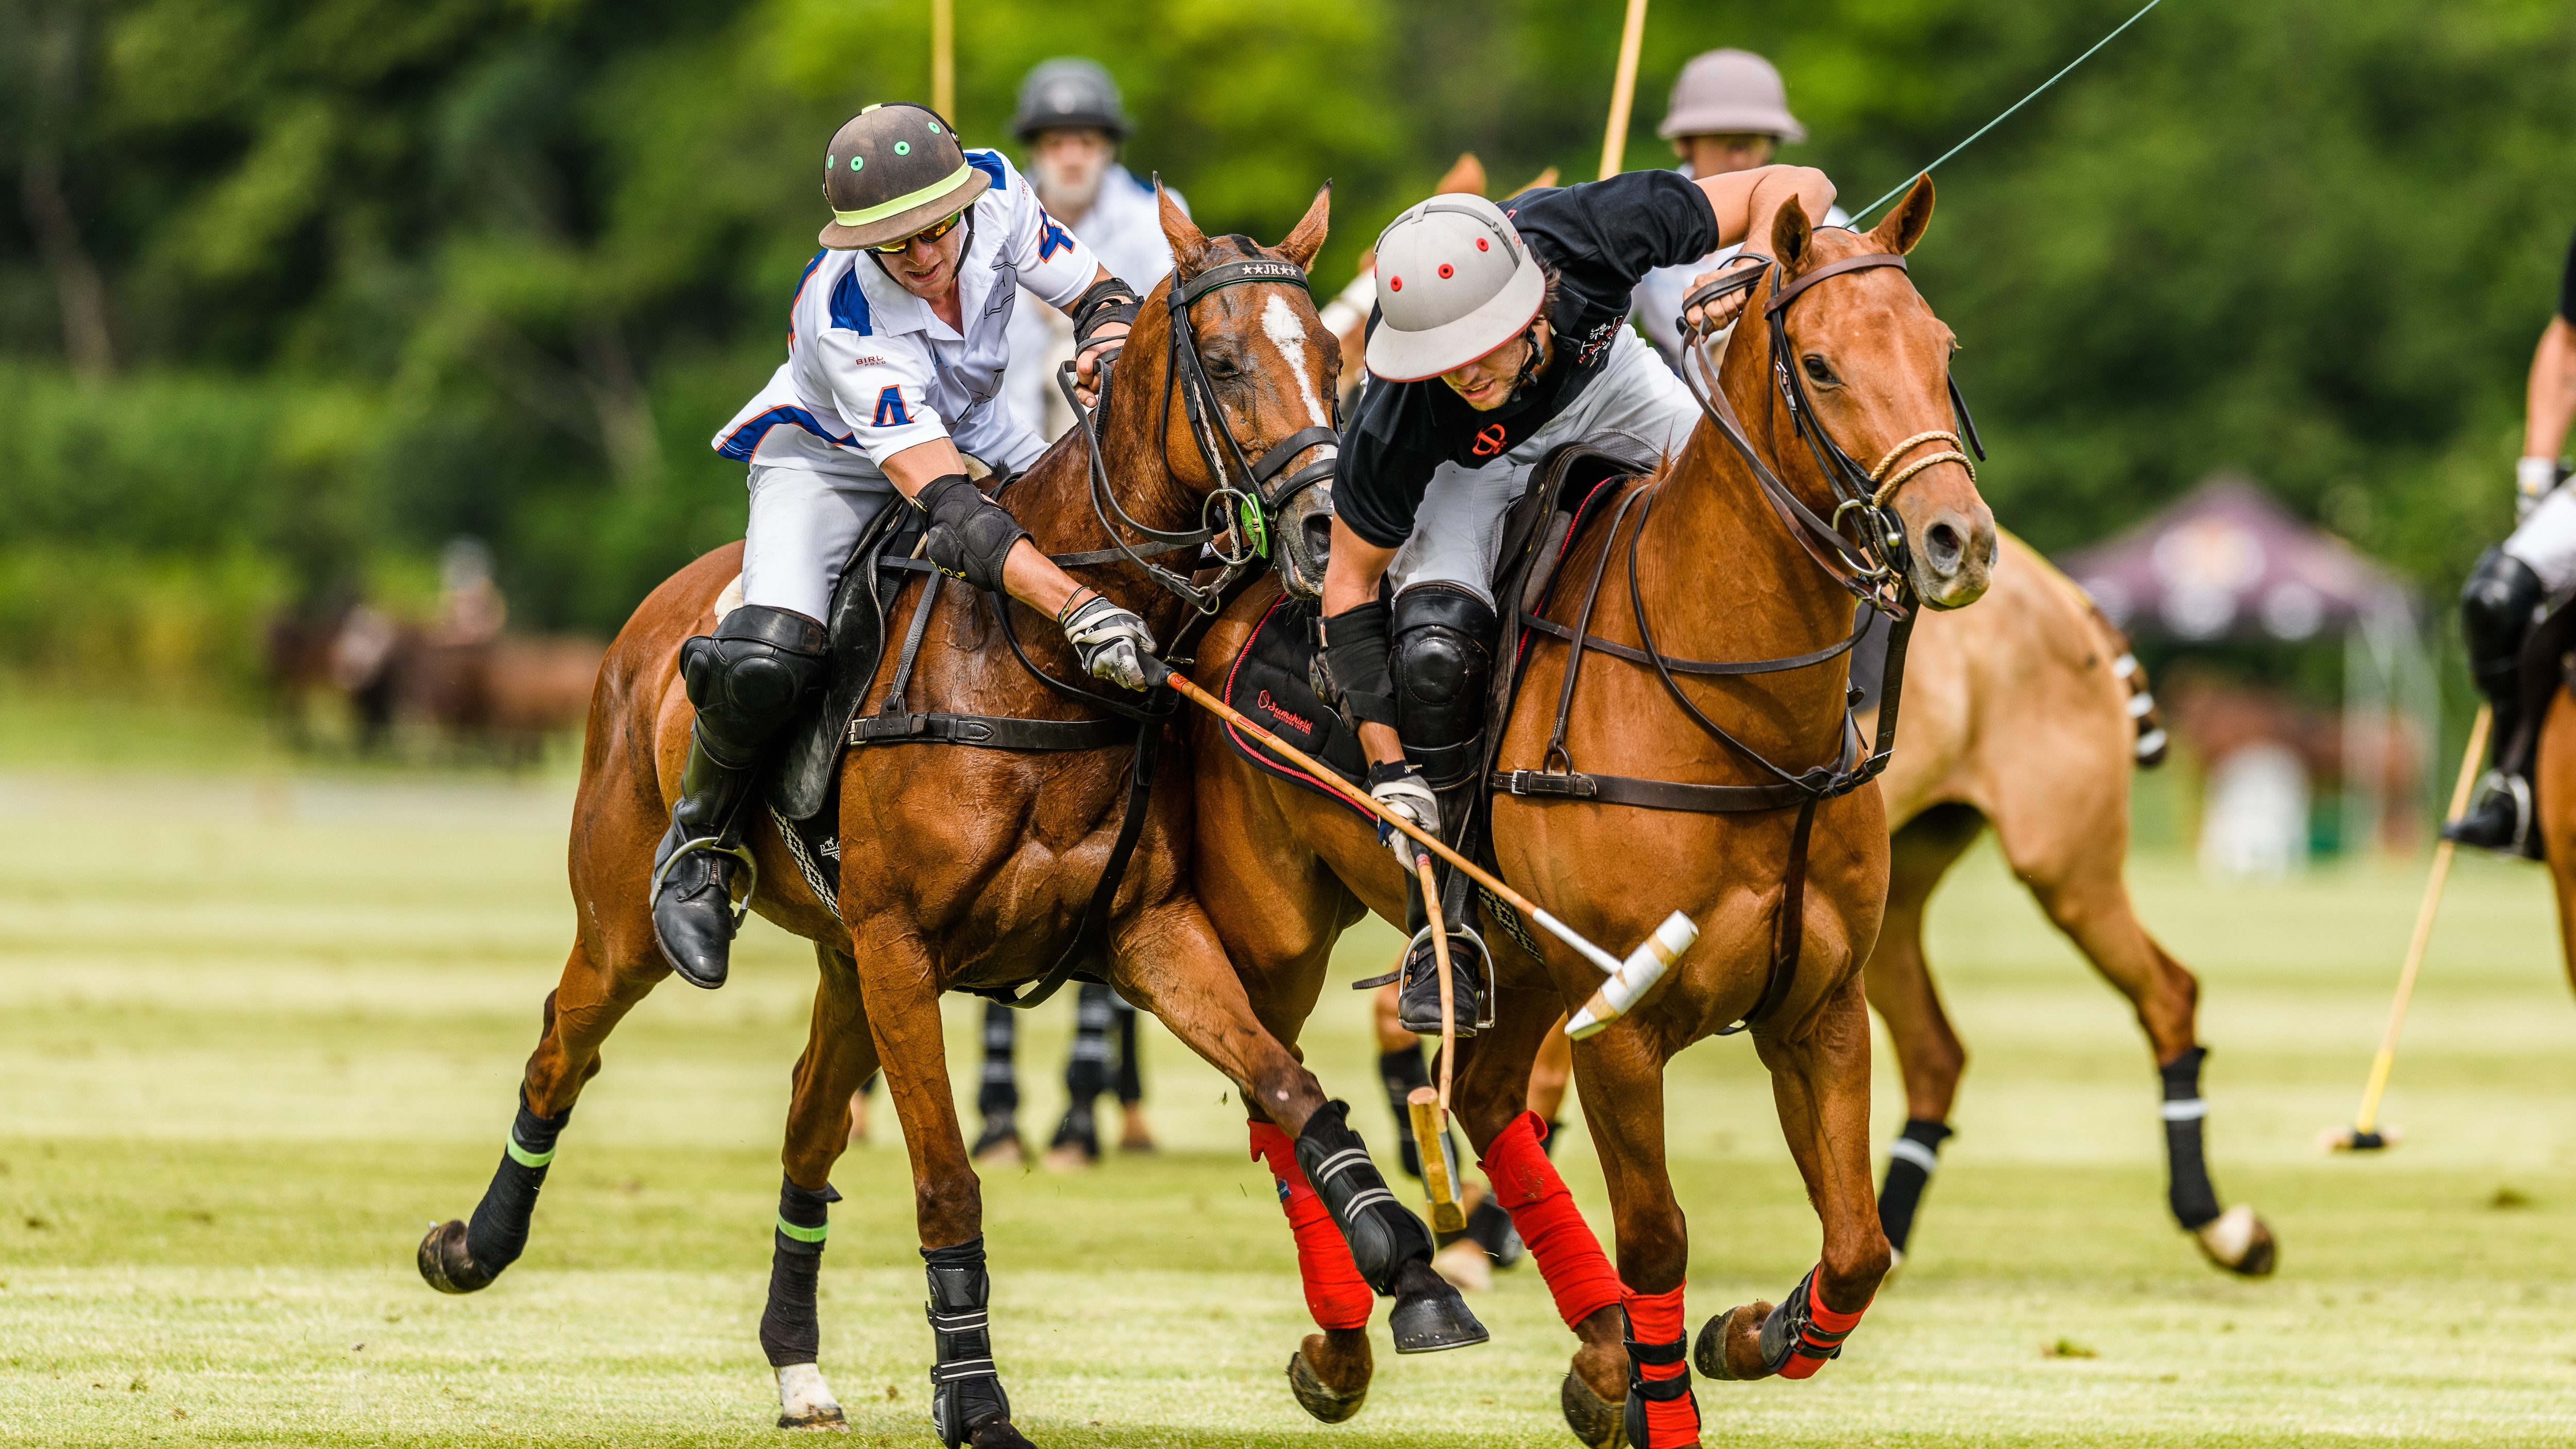 The Polo Rider Cup 2021, Chantilly, France